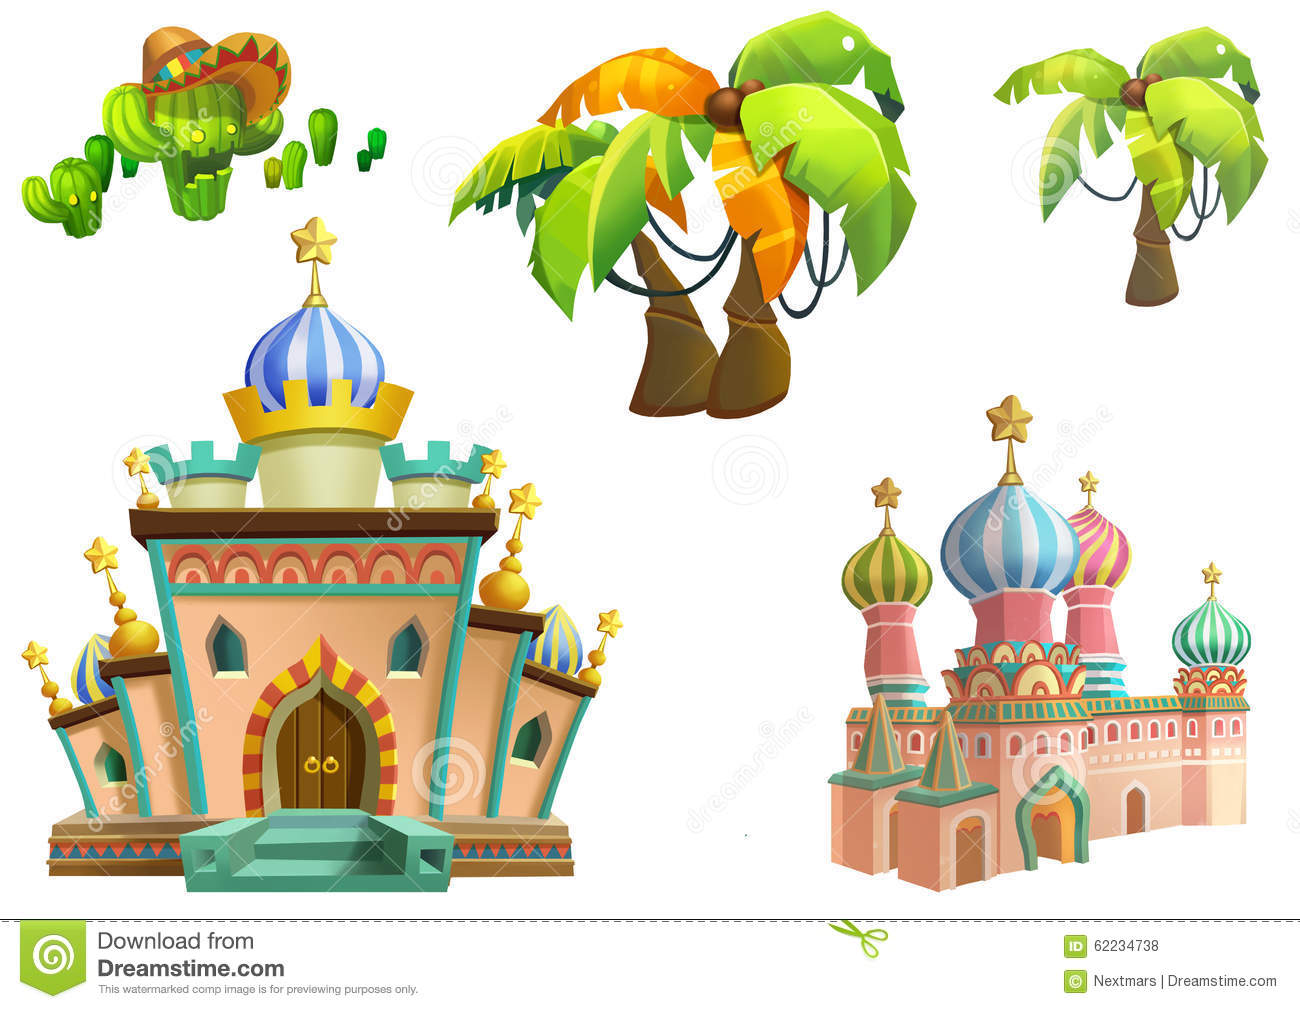 Illustration Desert Theme Elements Design Set 3 Game Assets The House The Tree The Cactus